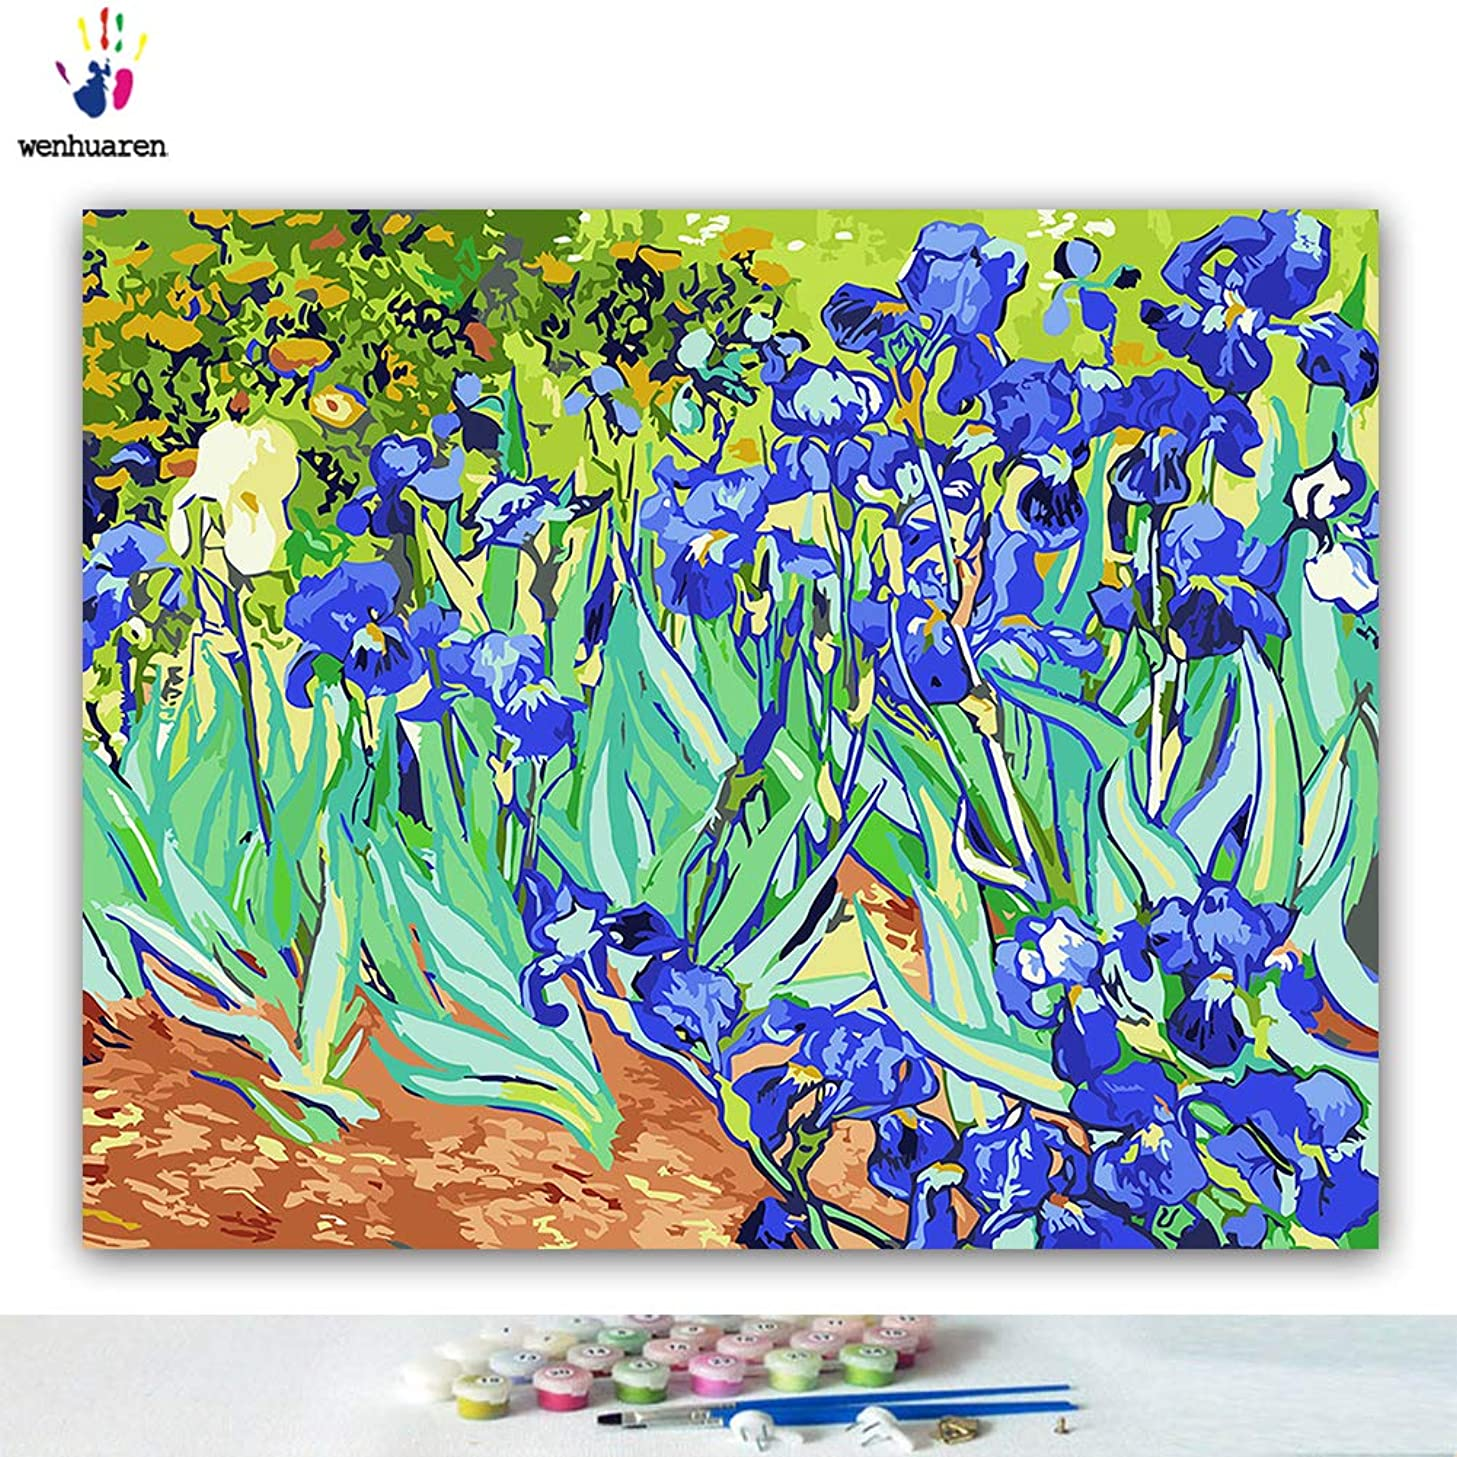 Paint by Number Kits 16 x 20 inch Canvas DIY Oil Painting for Kids, Students, Adults Beginner with Brushes and Acrylic Pigment -Irises Vincent Willem Van Gogh(Without Frame)